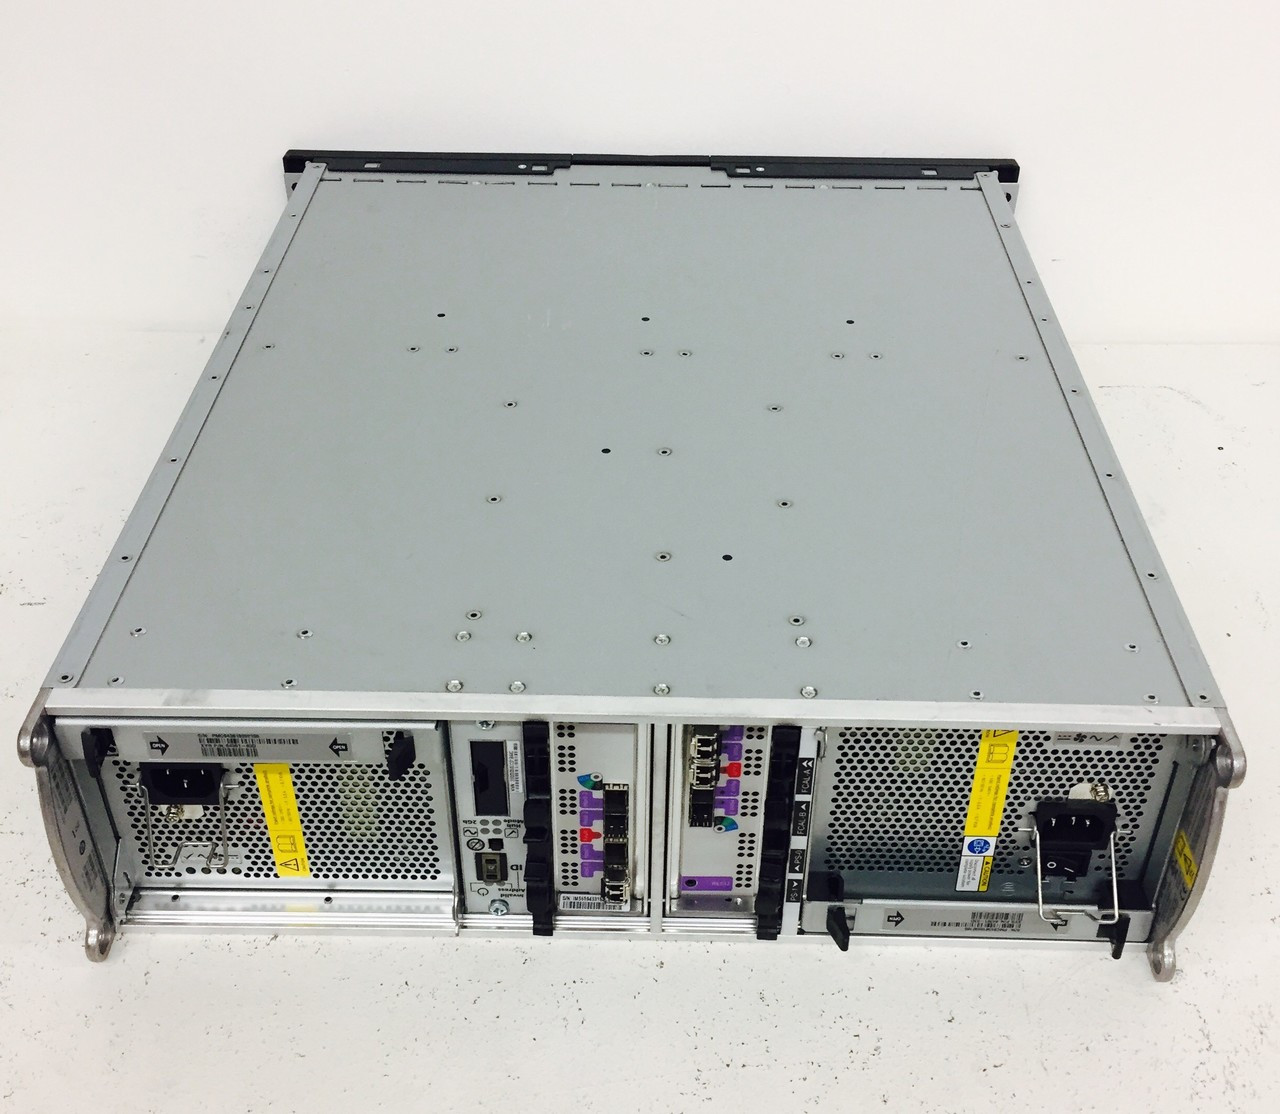 HP 78933-02 3PAR 16 BAY LFF STORAGE ARRAY